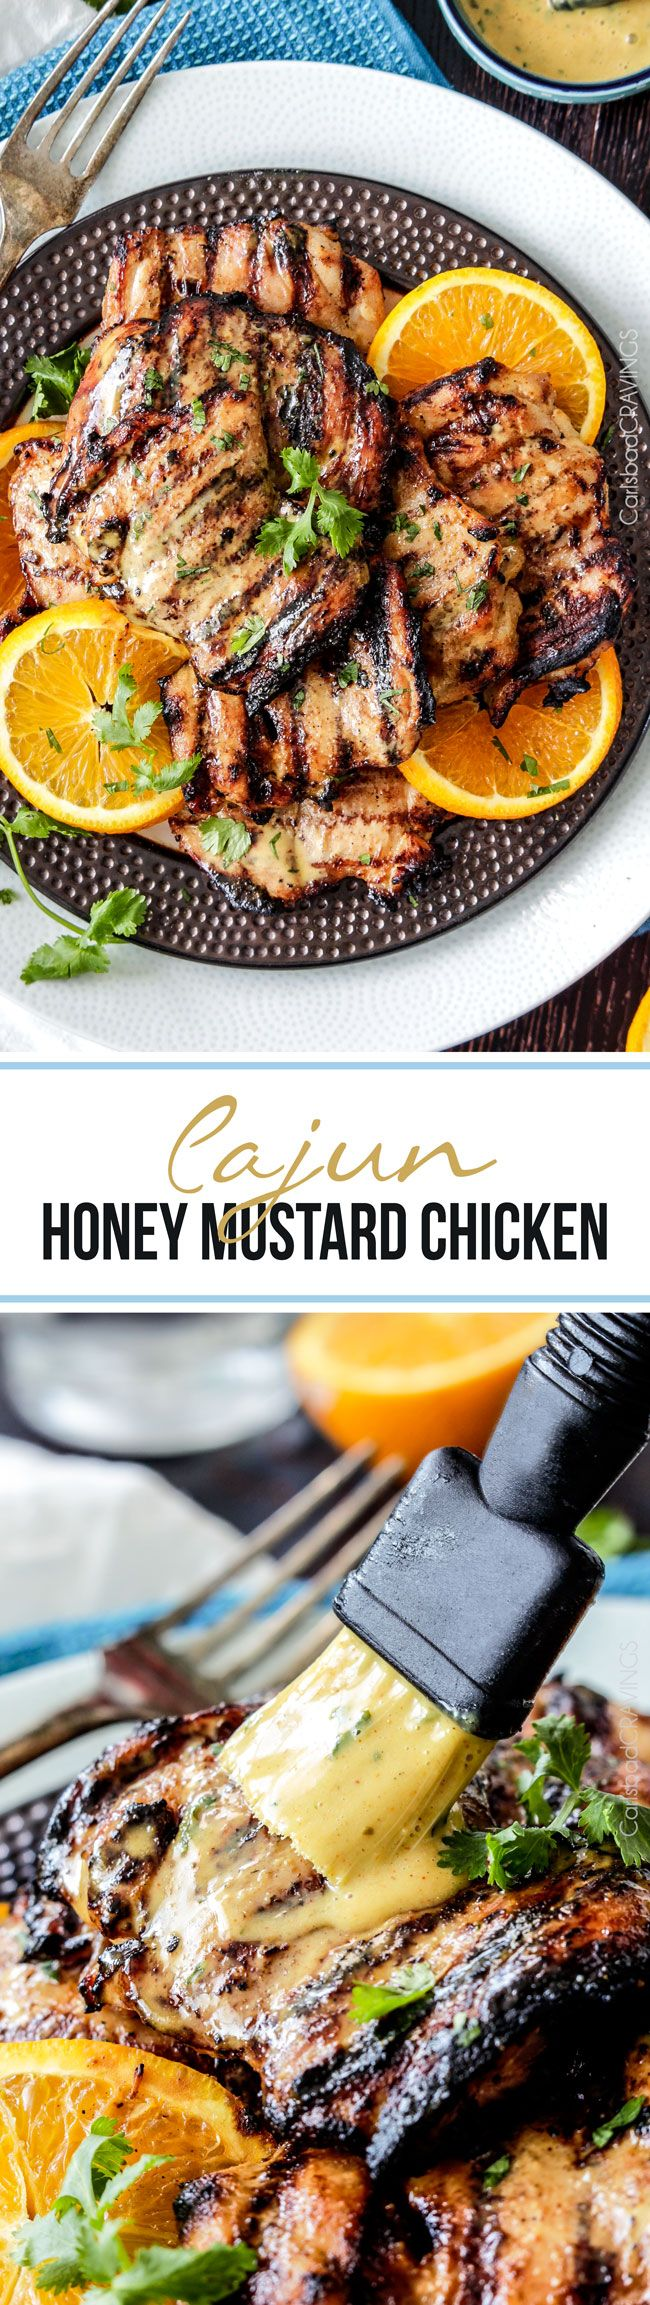 Cajun Honey Mustard Chicken - Smothered in a creamy honey mustard sauce - an easy marinate ahead weeknight meal or delicious enough for company! via @carlsbadcraving